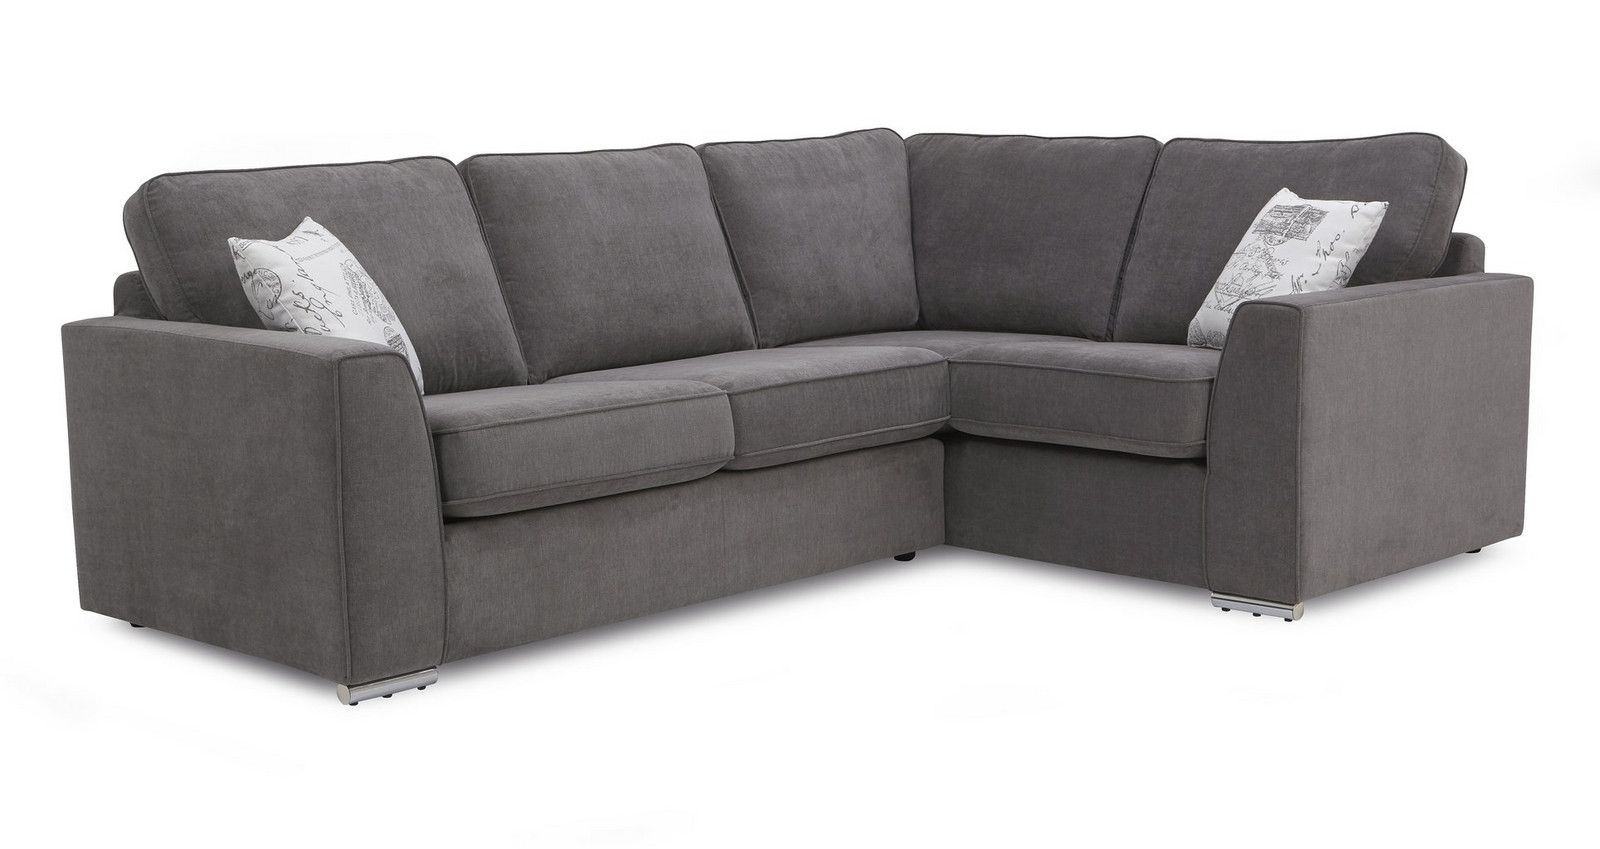 Skill Left Hand Facing Corner Sofa Plaza Dfs Beds